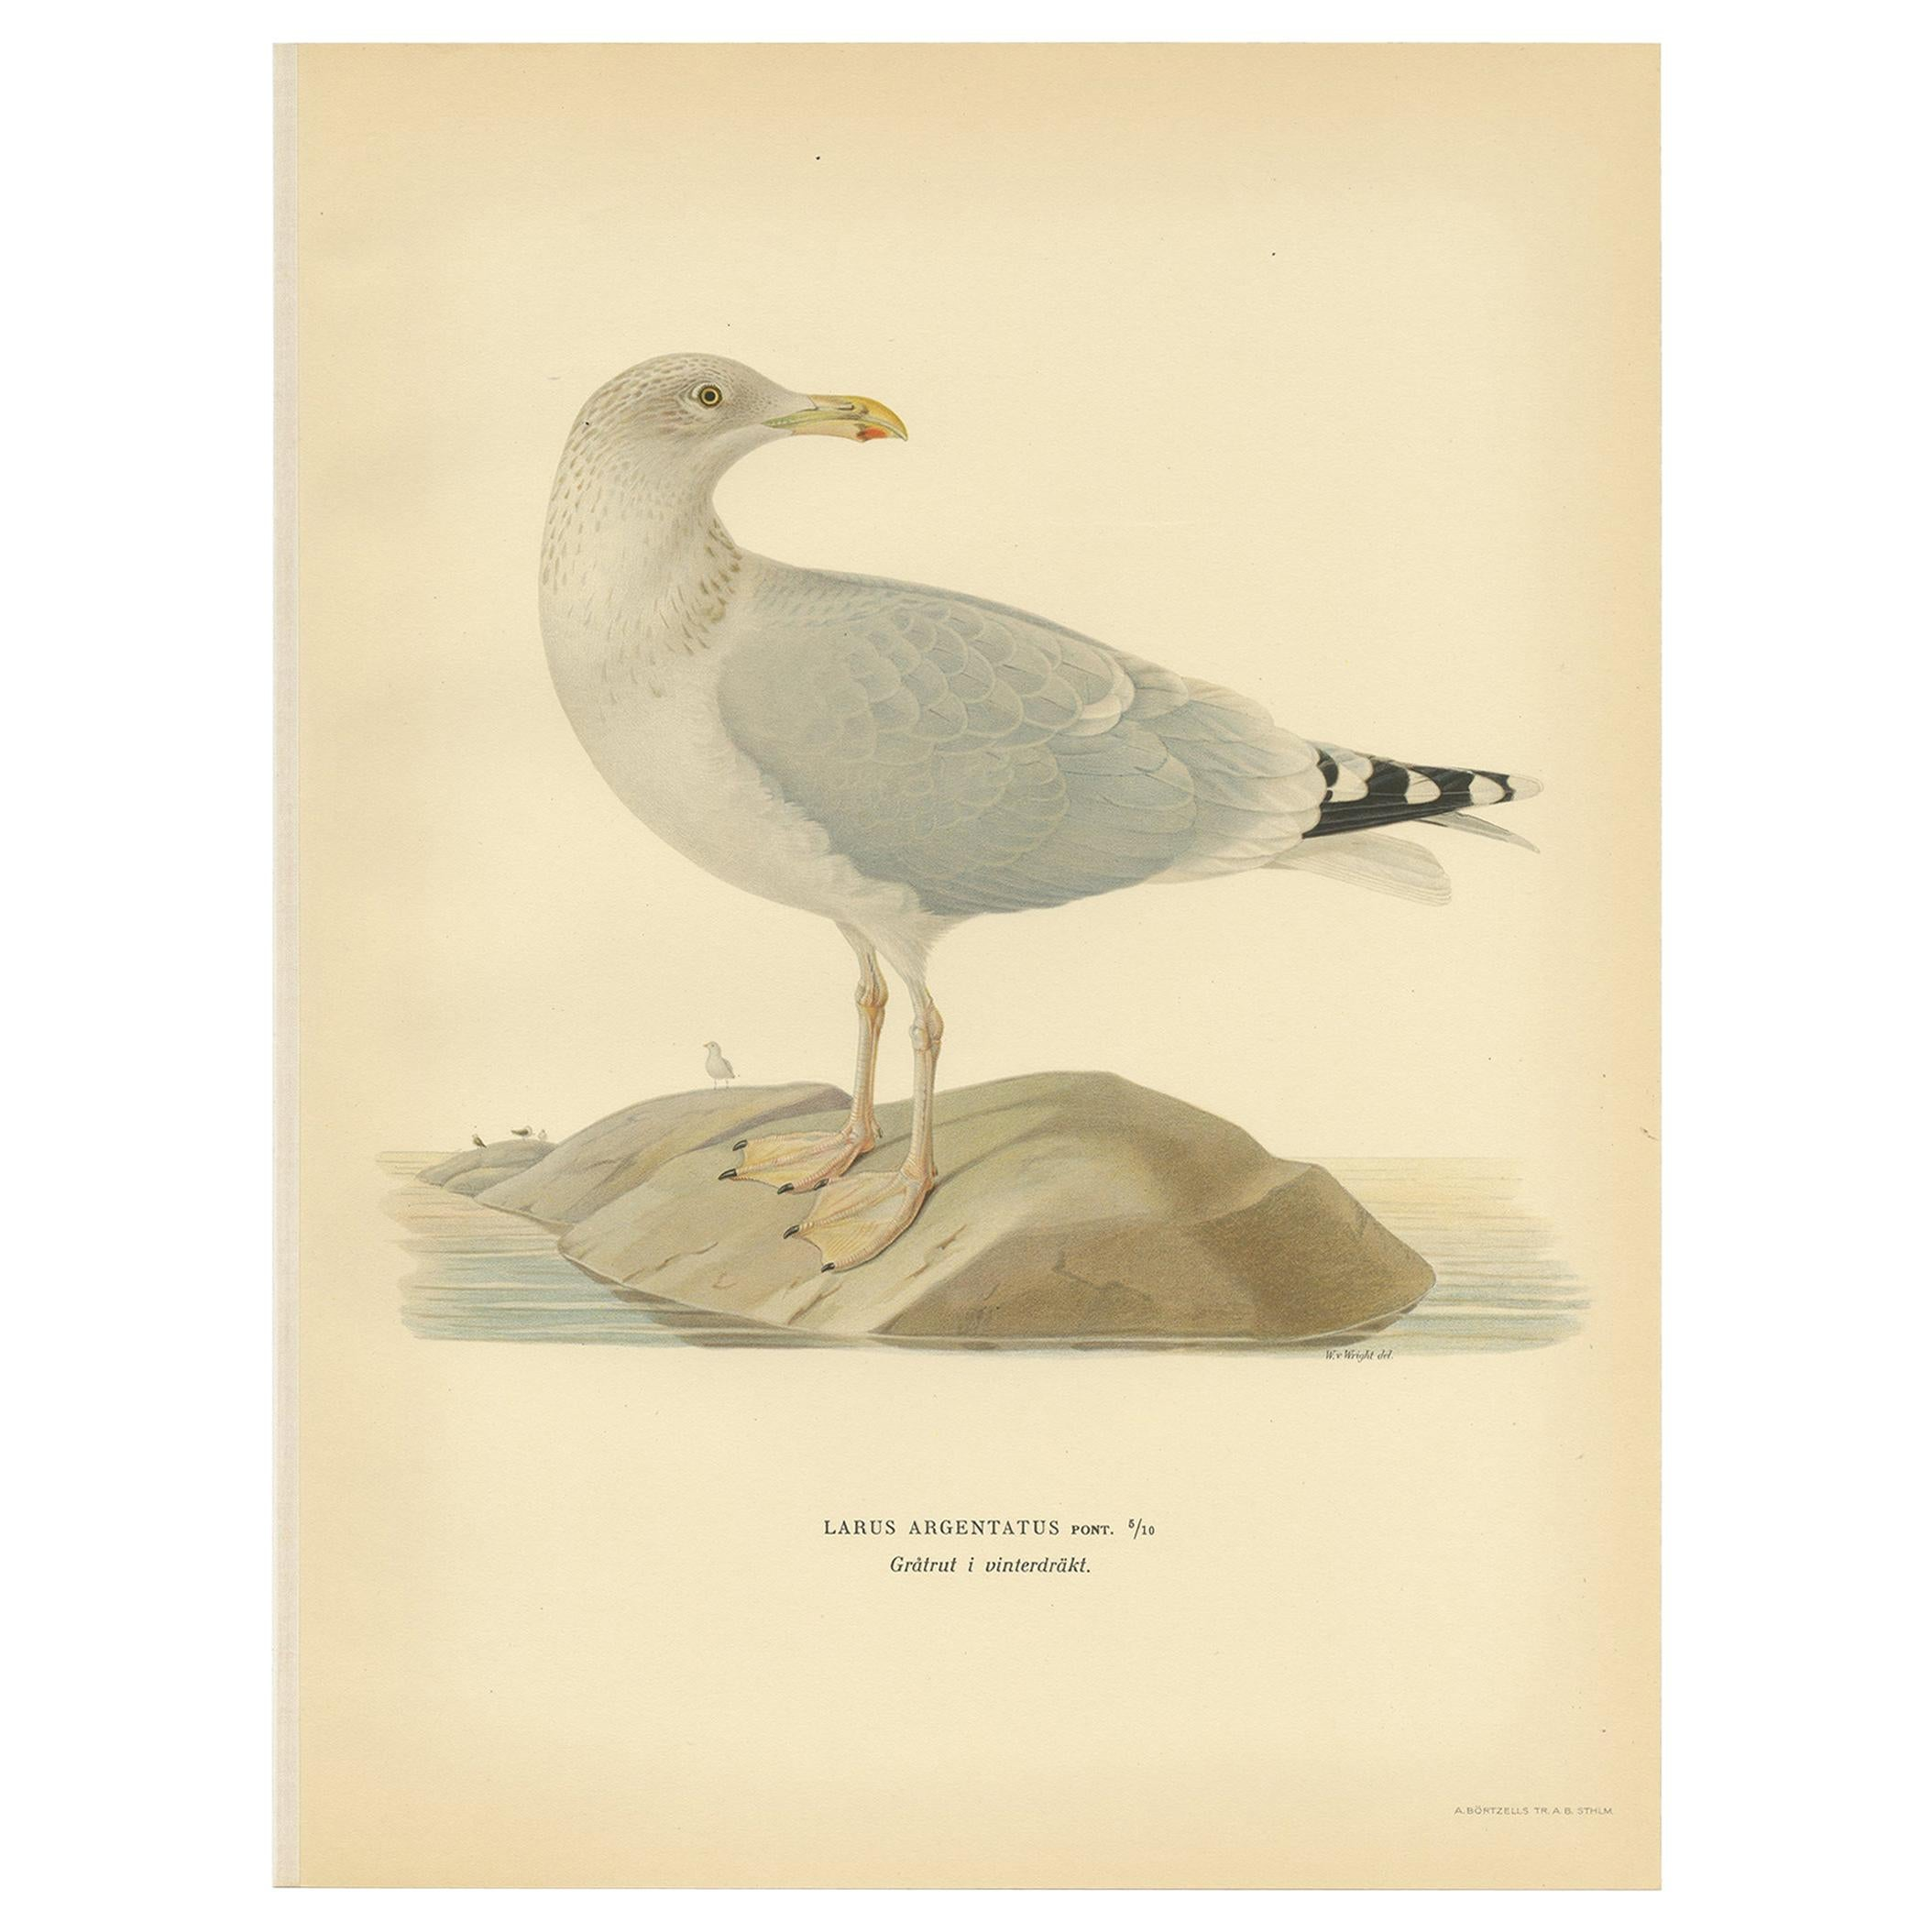 Antique Bird Print of the European Herring Gull 'Winter' by Von Wright, '1929'